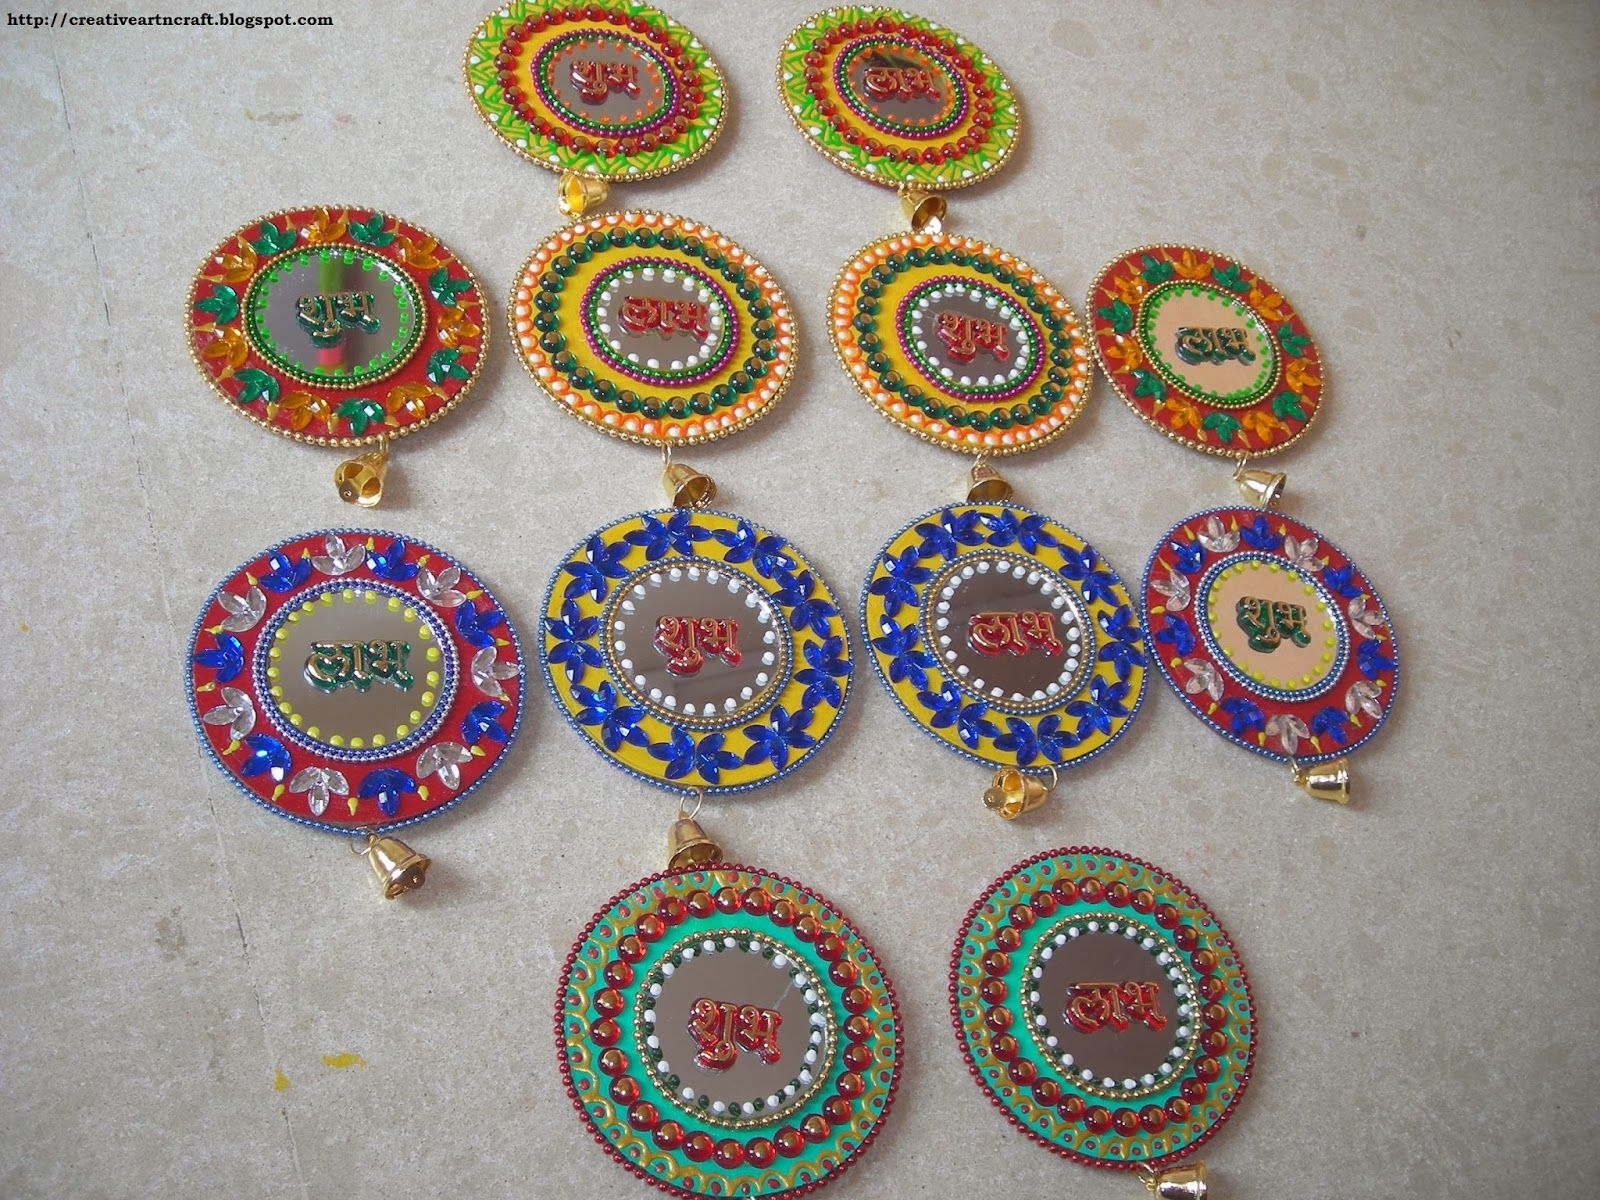 cd diwali craft diwali decor pinterest diwali craft craft